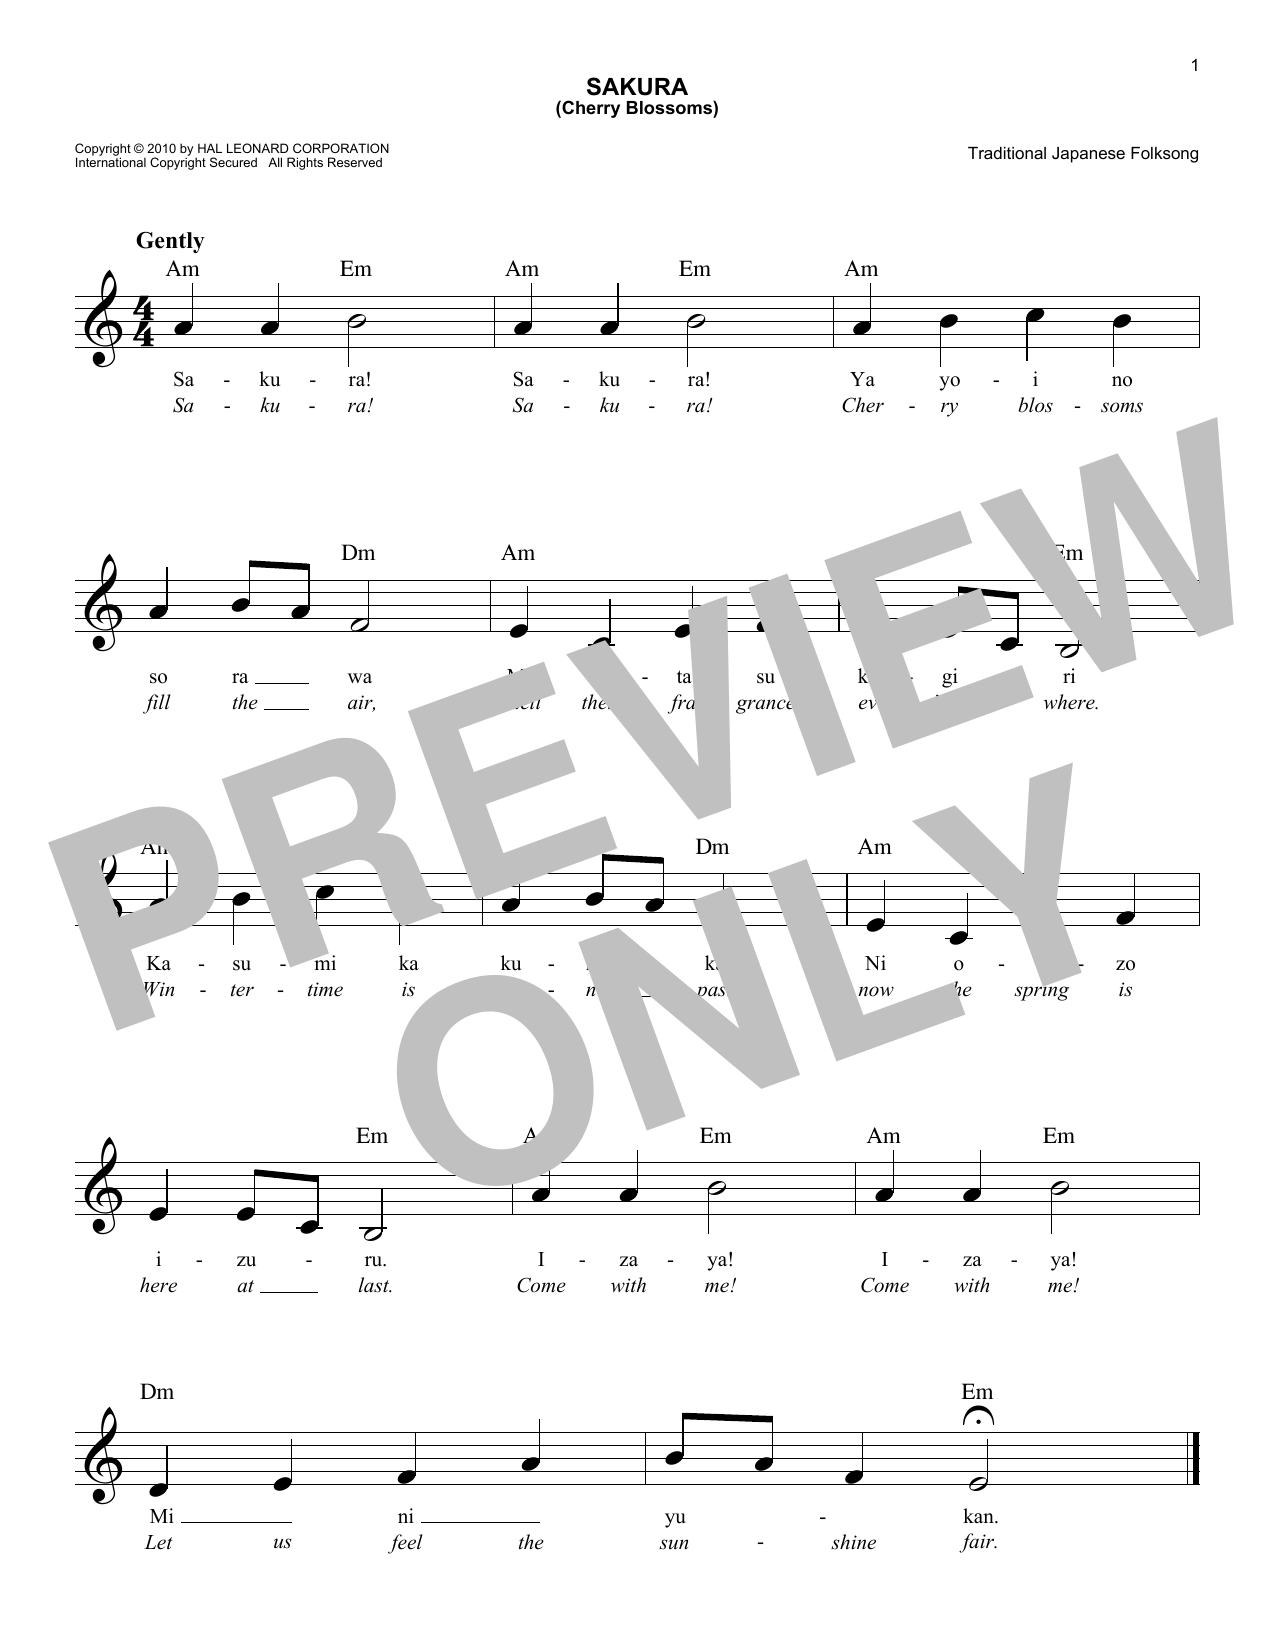 Japanese Folksong Sakura (Cherry Blossoms) sheet music preview music notes and score for Piano including 2 page(s)